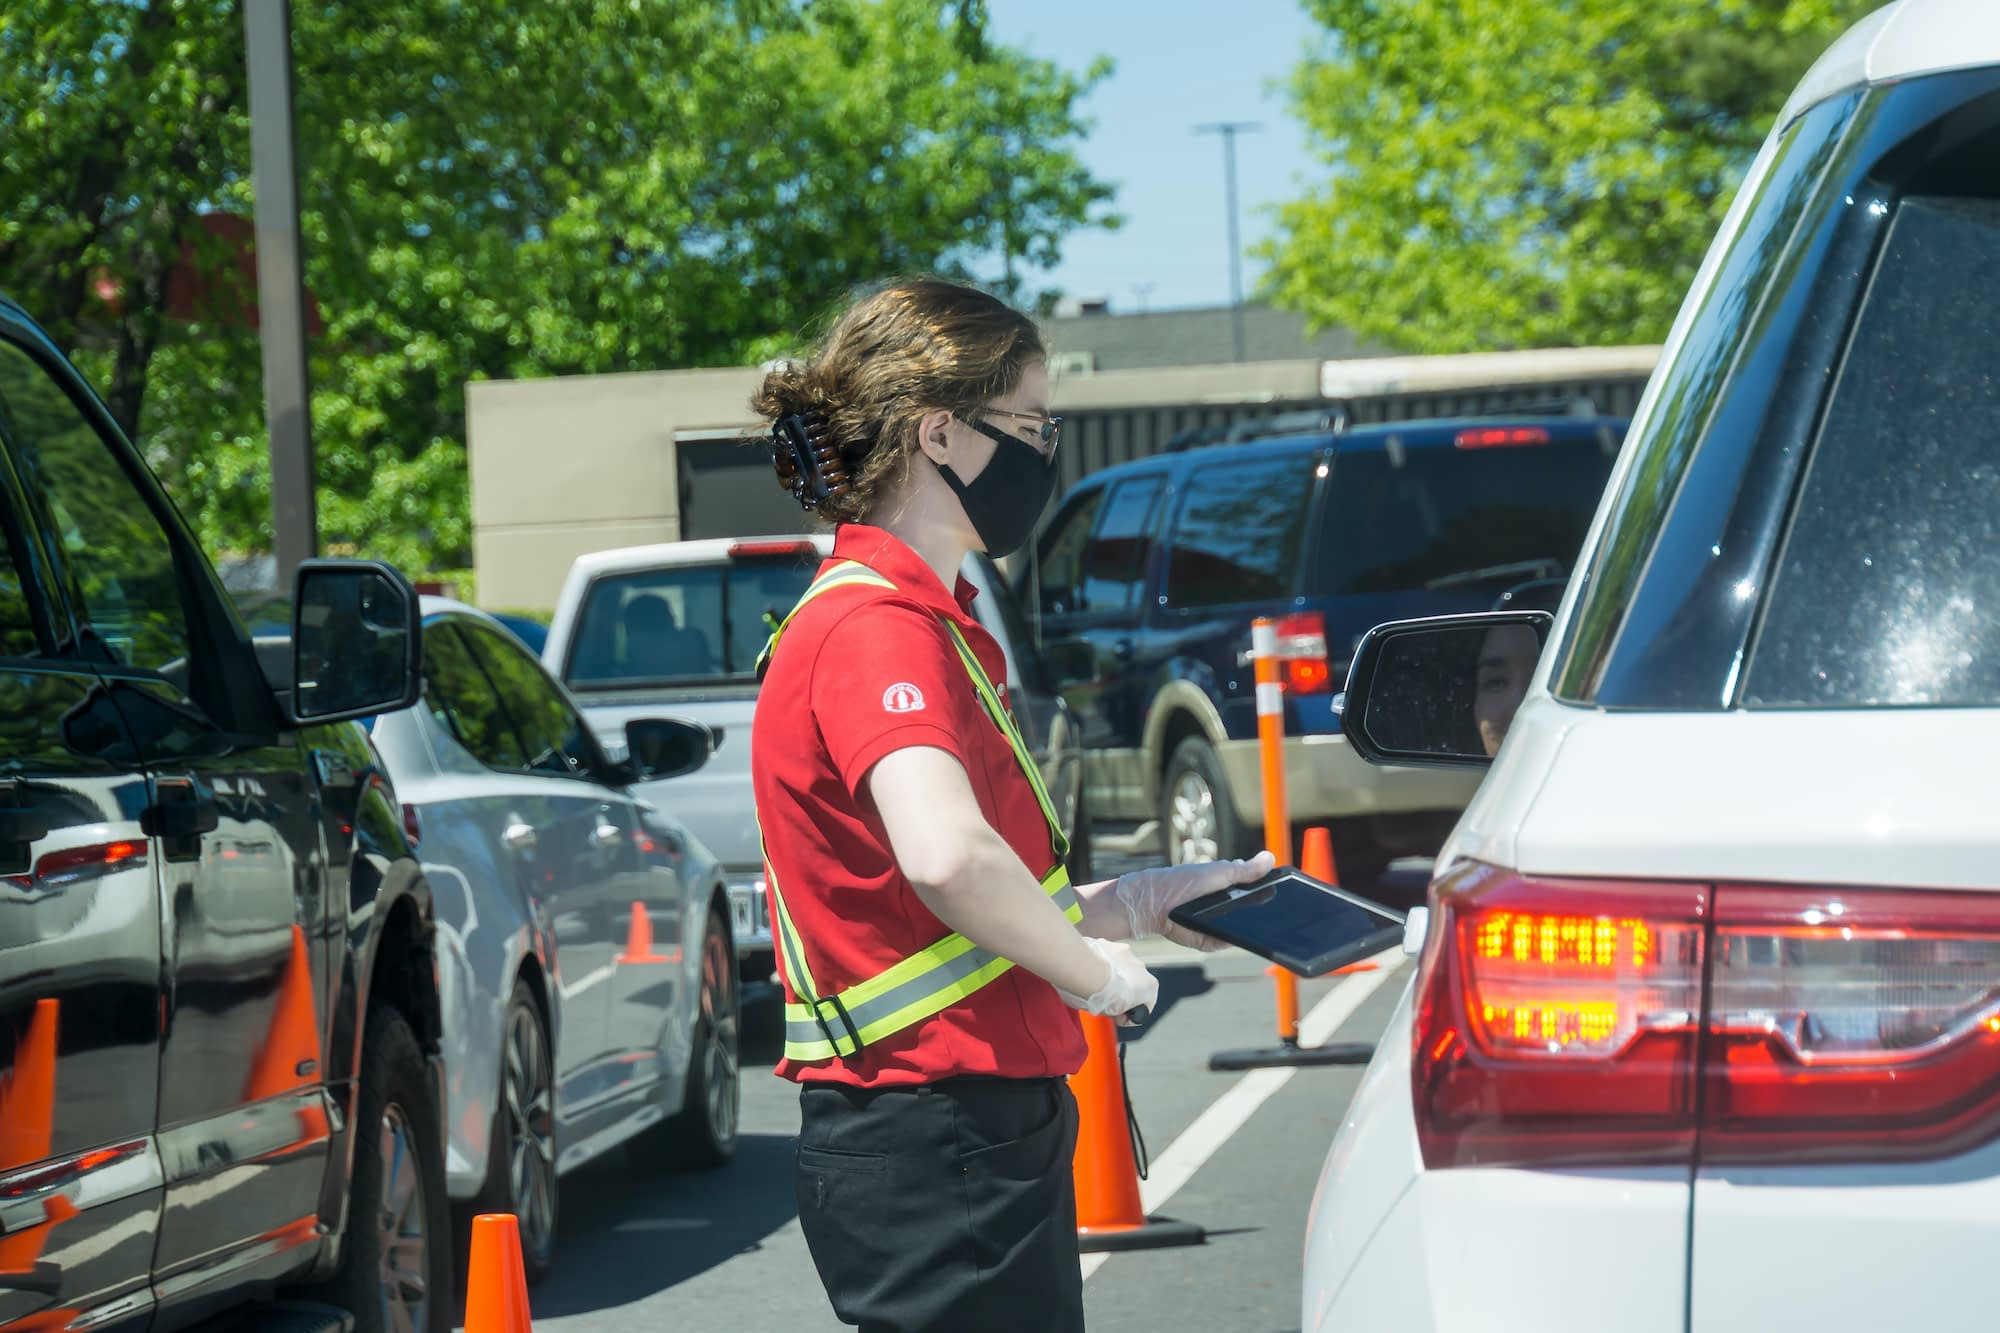 Young youthful fast food worker working at Chick-fil-a drive through amidst cars take orders with tablet.